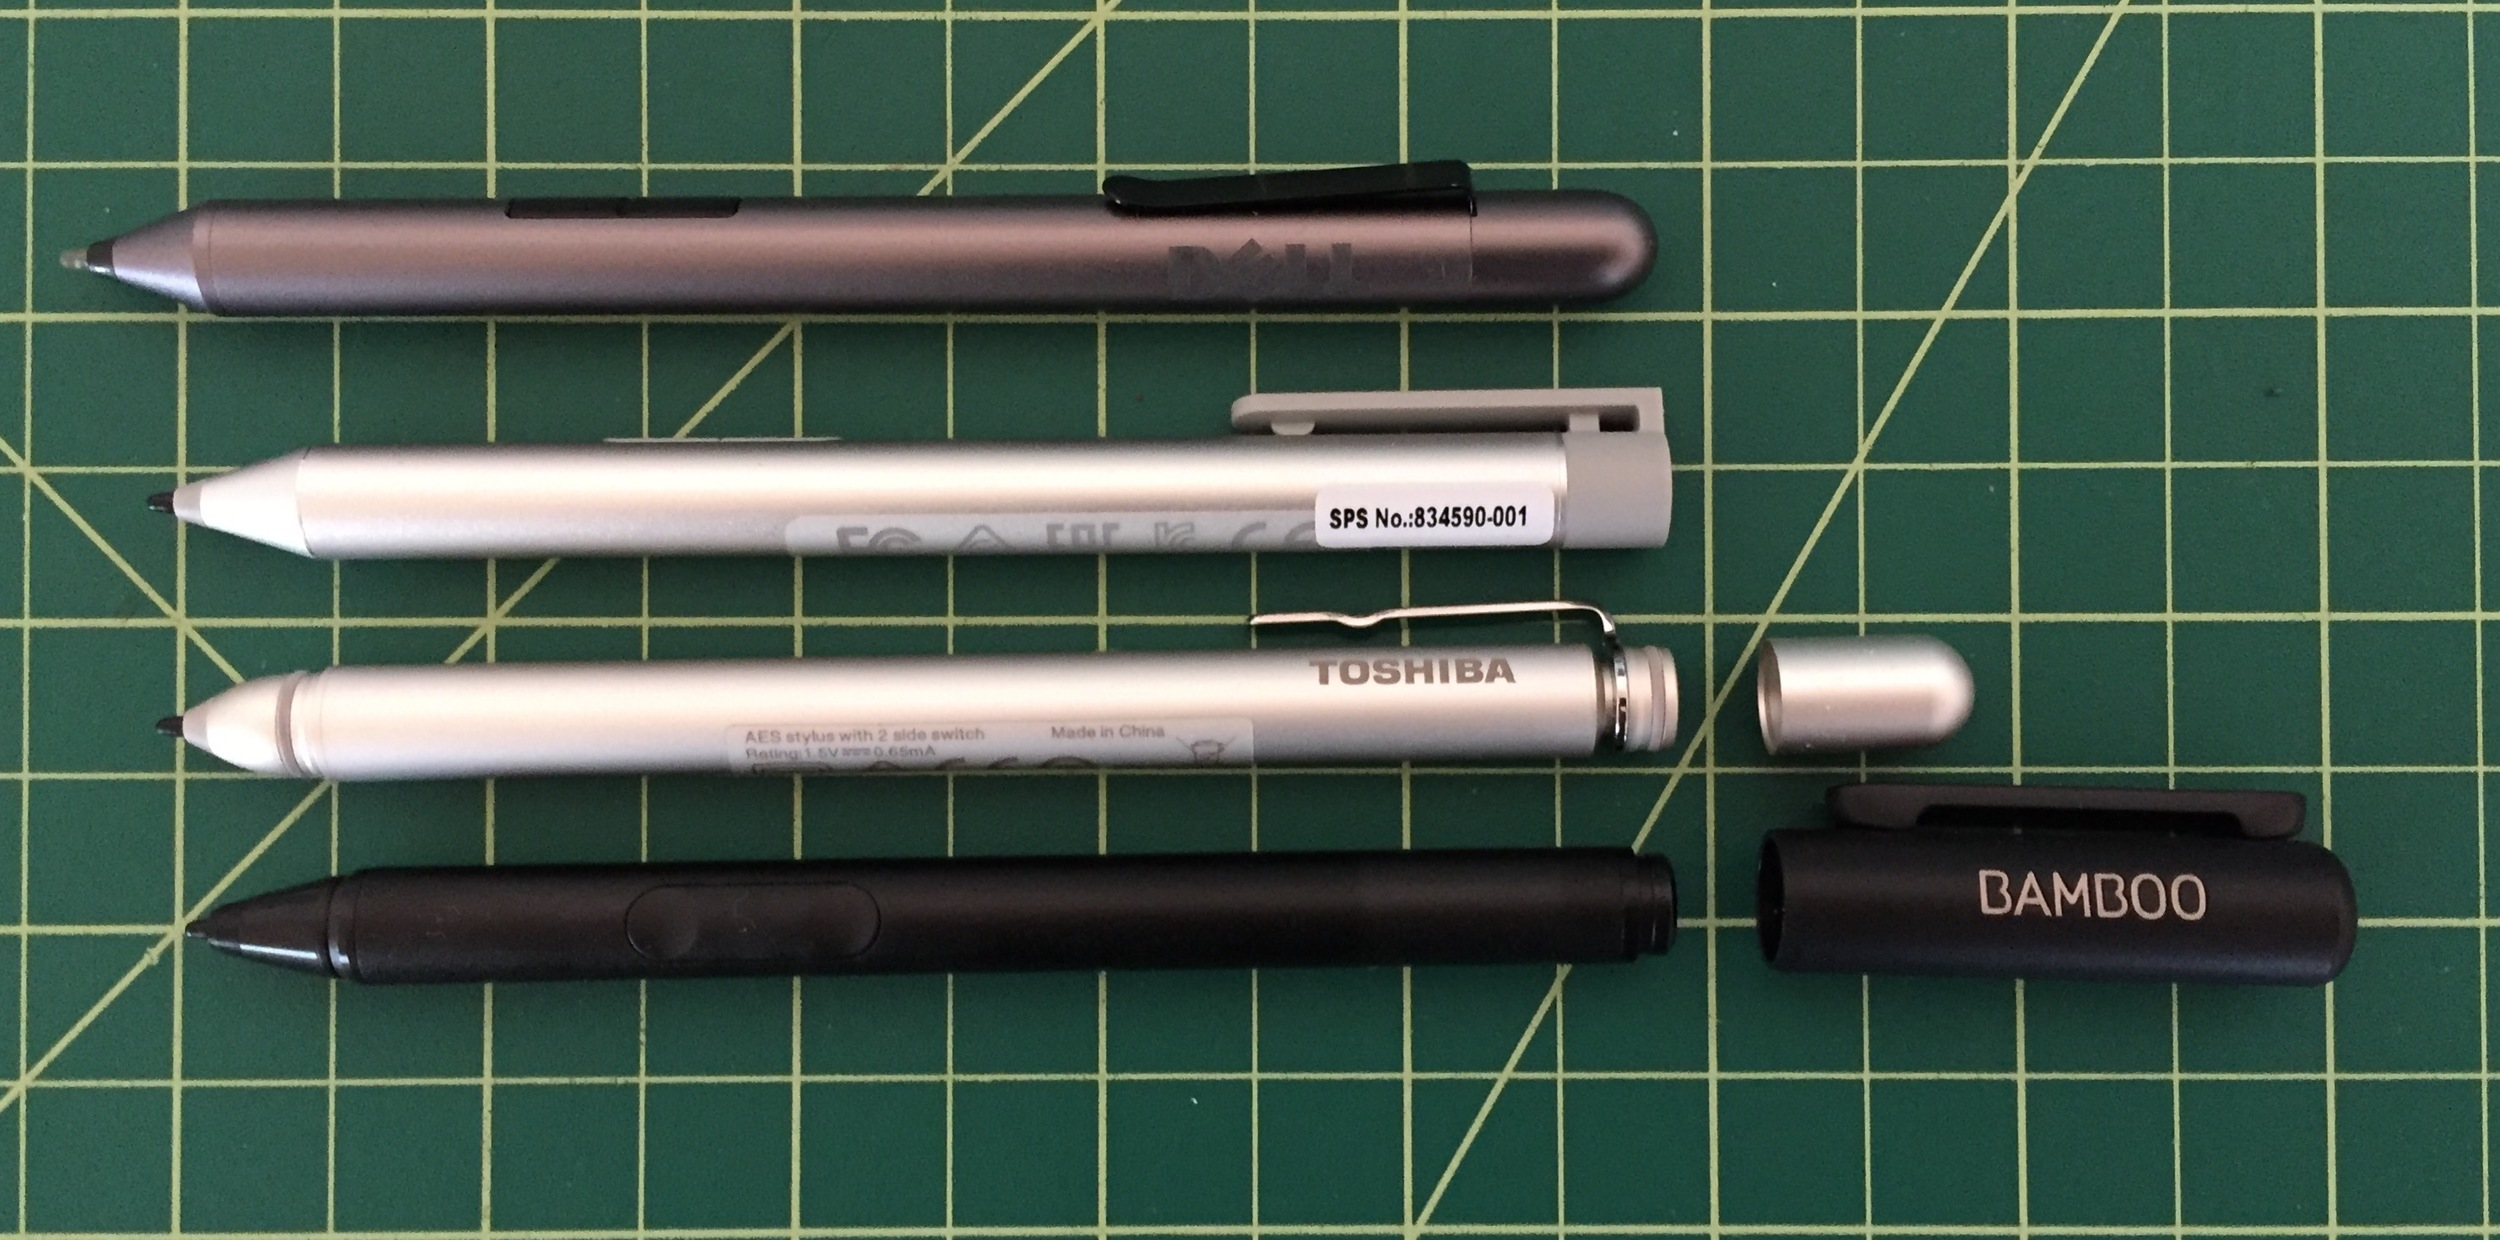 The Bamboo Smart (bottom) is surprisingly small and too light without its cap.